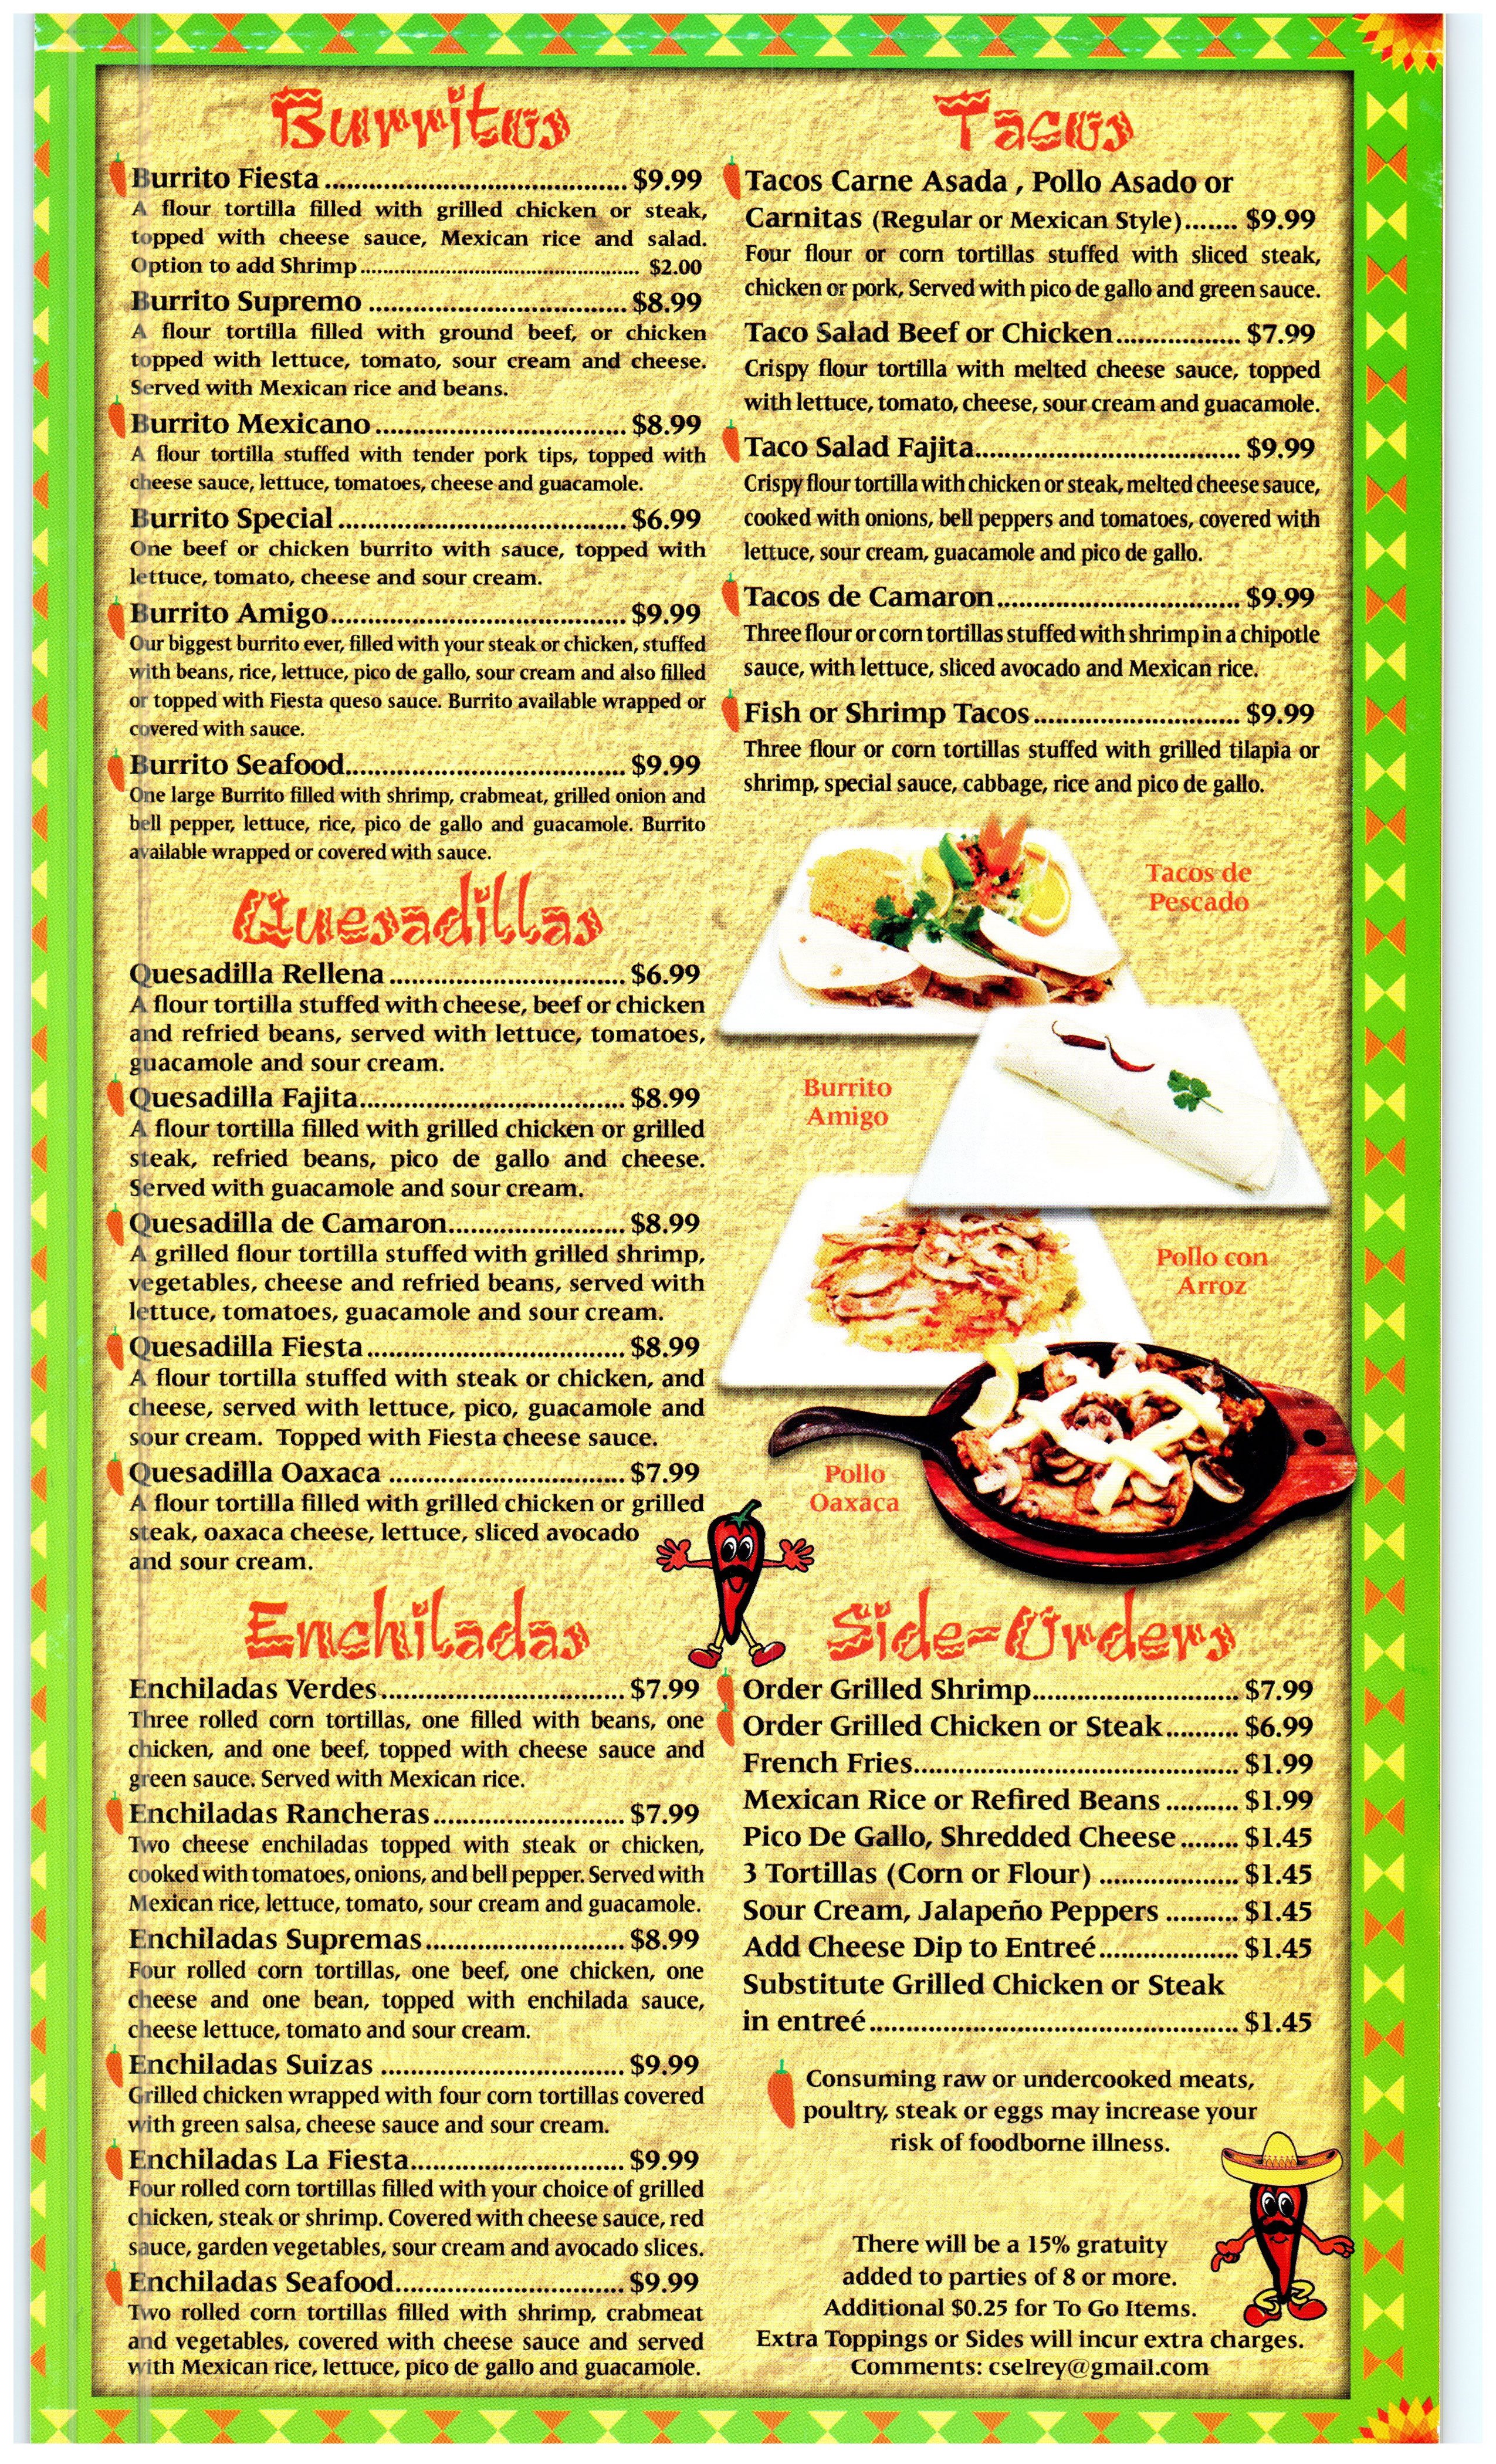 Fiesta Mexicana Mexican Food Pg 5